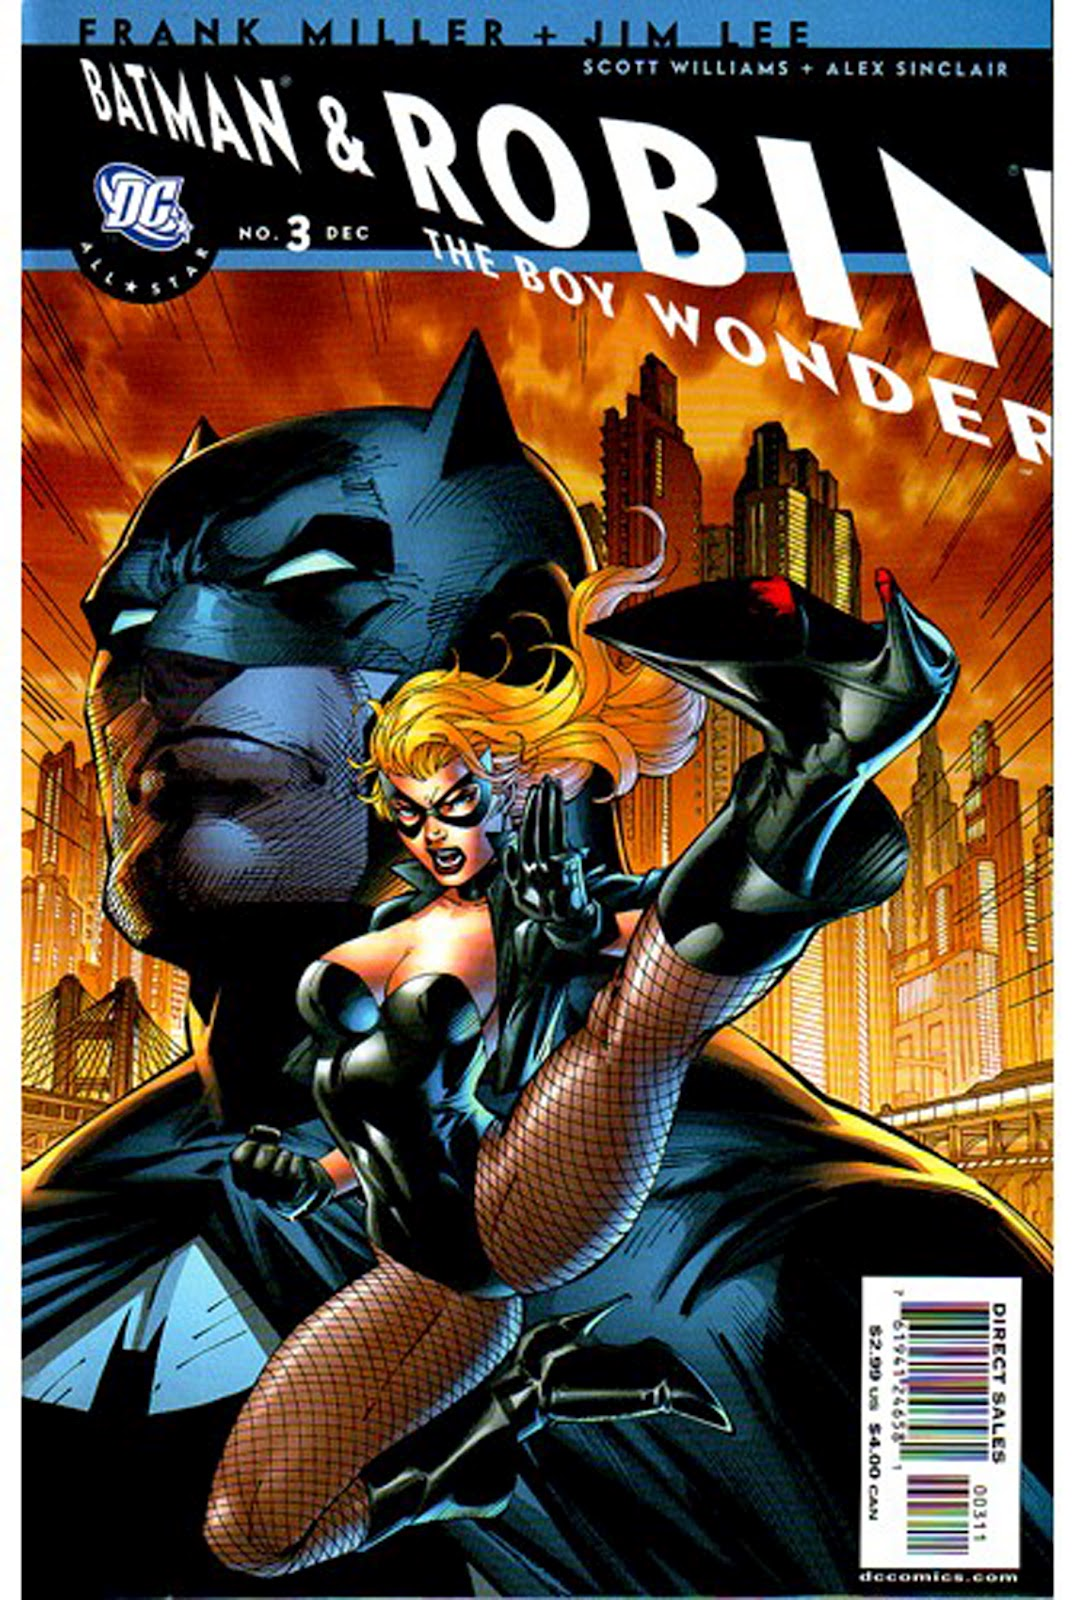 http://2.bp.blogspot.com/-eS3jGtBsHtI/TztI9bNWrBI/AAAAAAAADv8/K8nl7YmNaYk/s1600/ALL+STAR+BATMAN+AND+ROBIN+issue+%23+3+sexy+black+canary+batman+beyond+flying+kick+jim+lee+art+artwok+pinup+dc+comics+new+52.jpg